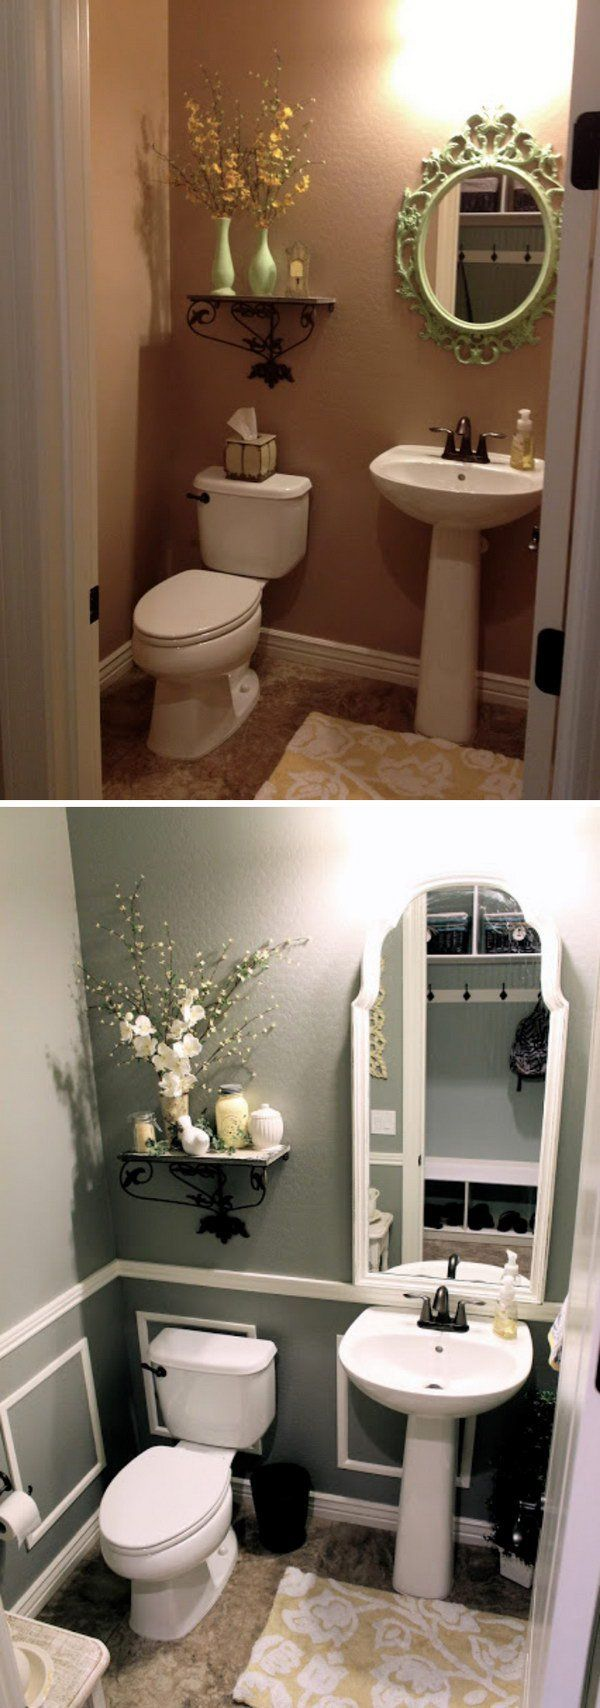 Bathroom Makeover Ideas best 25+ small bathroom makeovers ideas only on pinterest | small